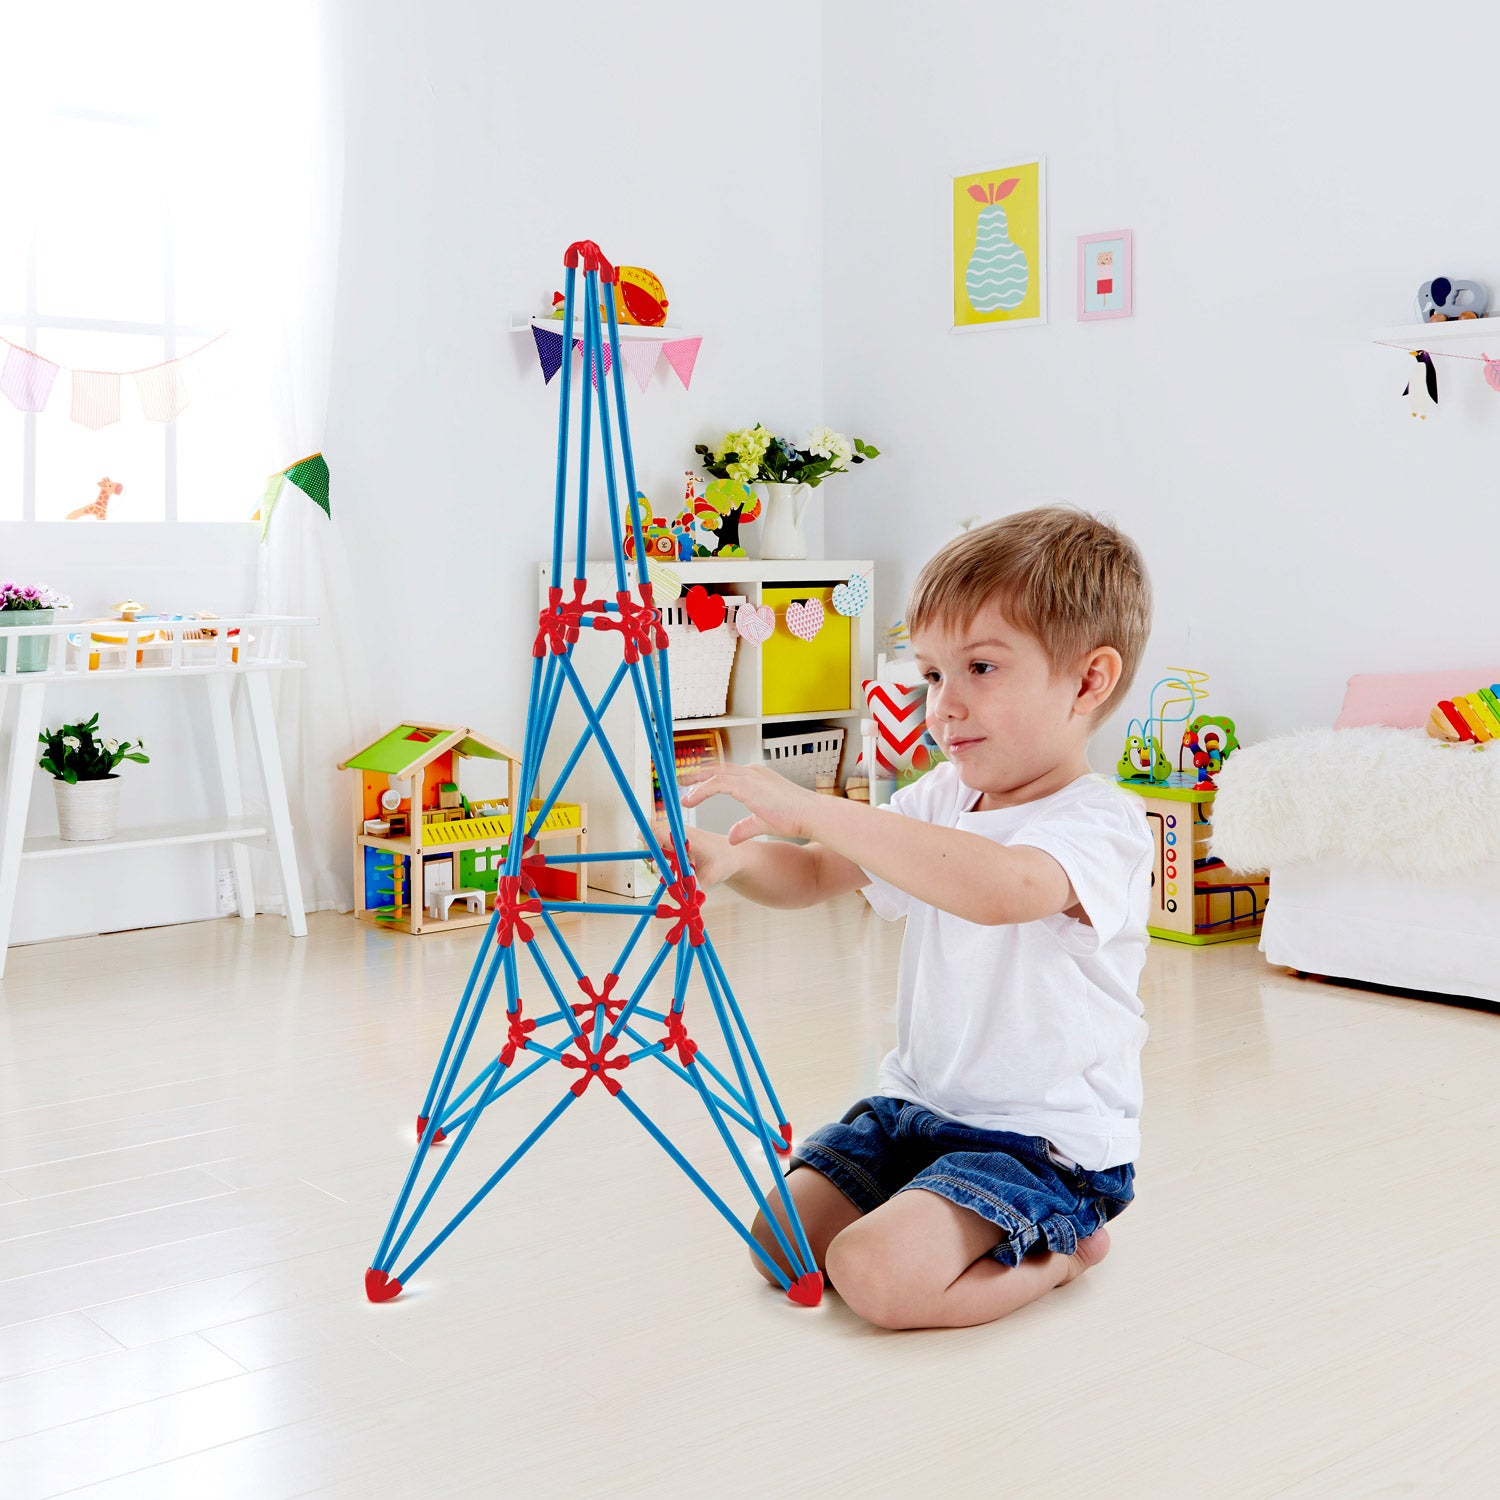 Flexistix Eiffel Tower